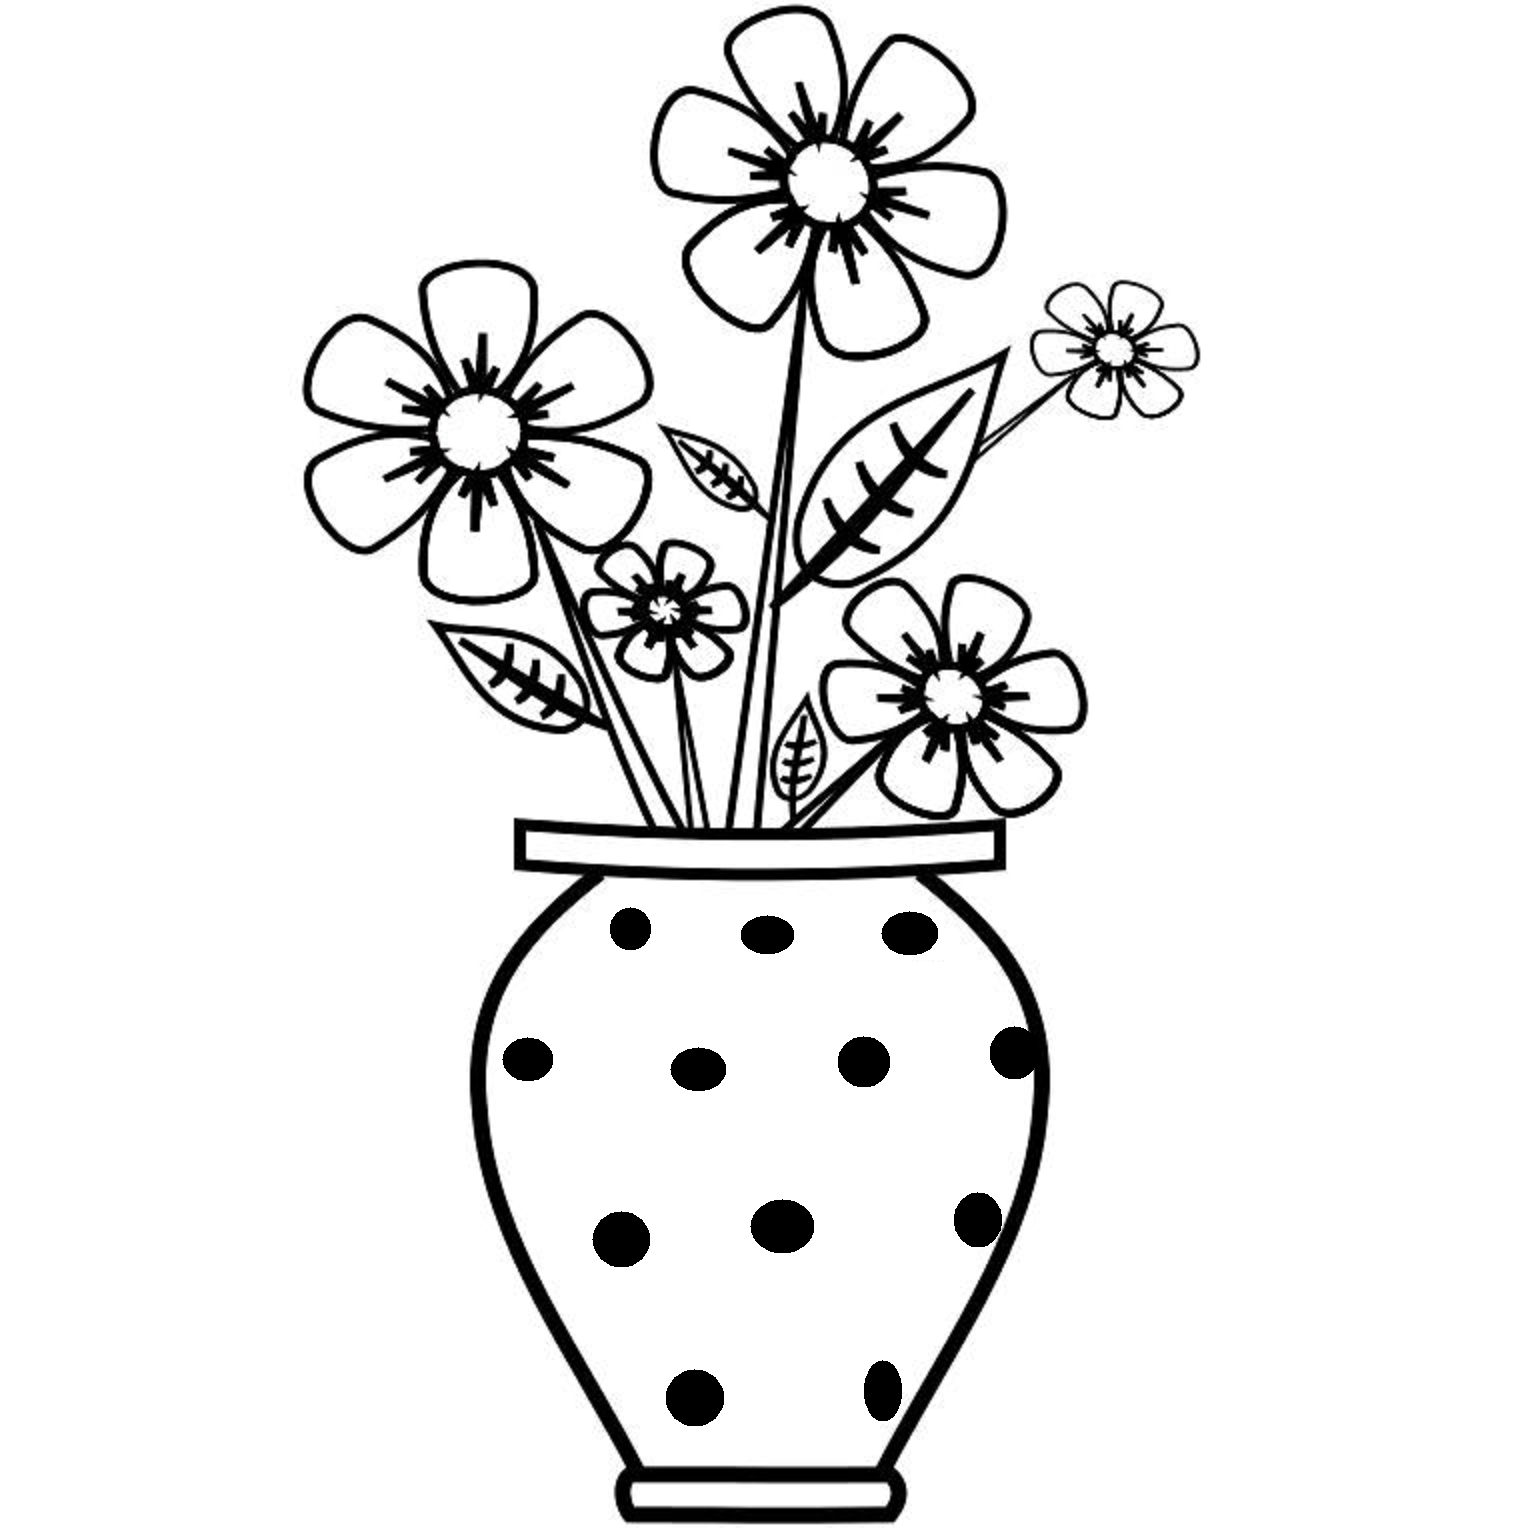 1532x1528 How To Draw Flower Pot Pots With Flowers Drawing